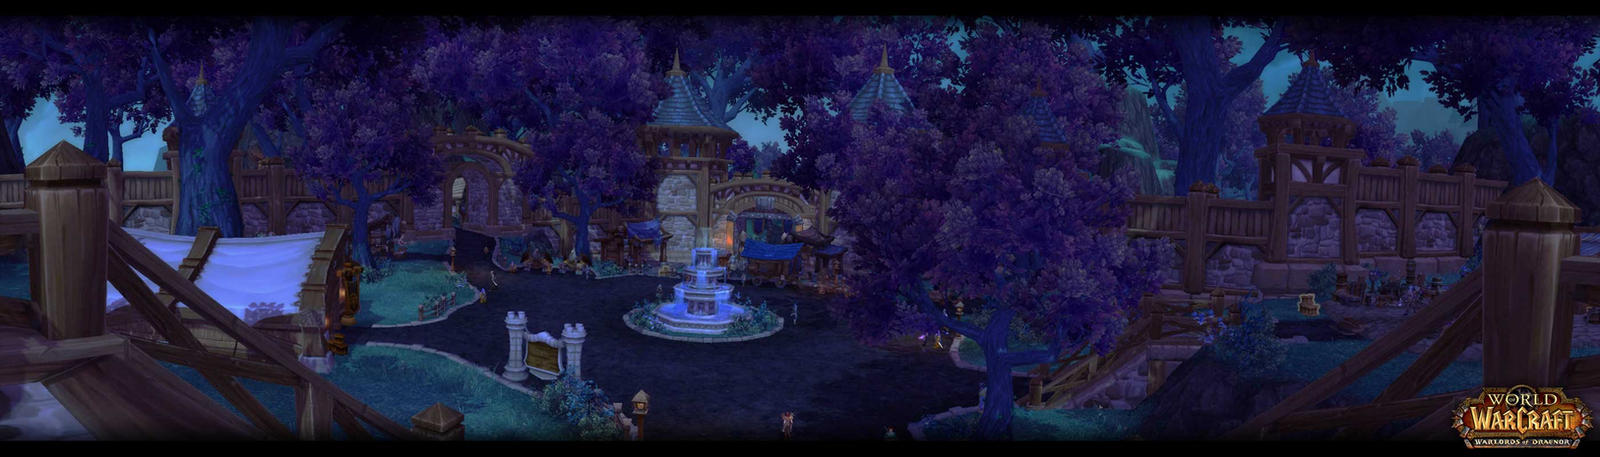 World of Warcraft Warlords of Draenor Garrrison by Meow-chi